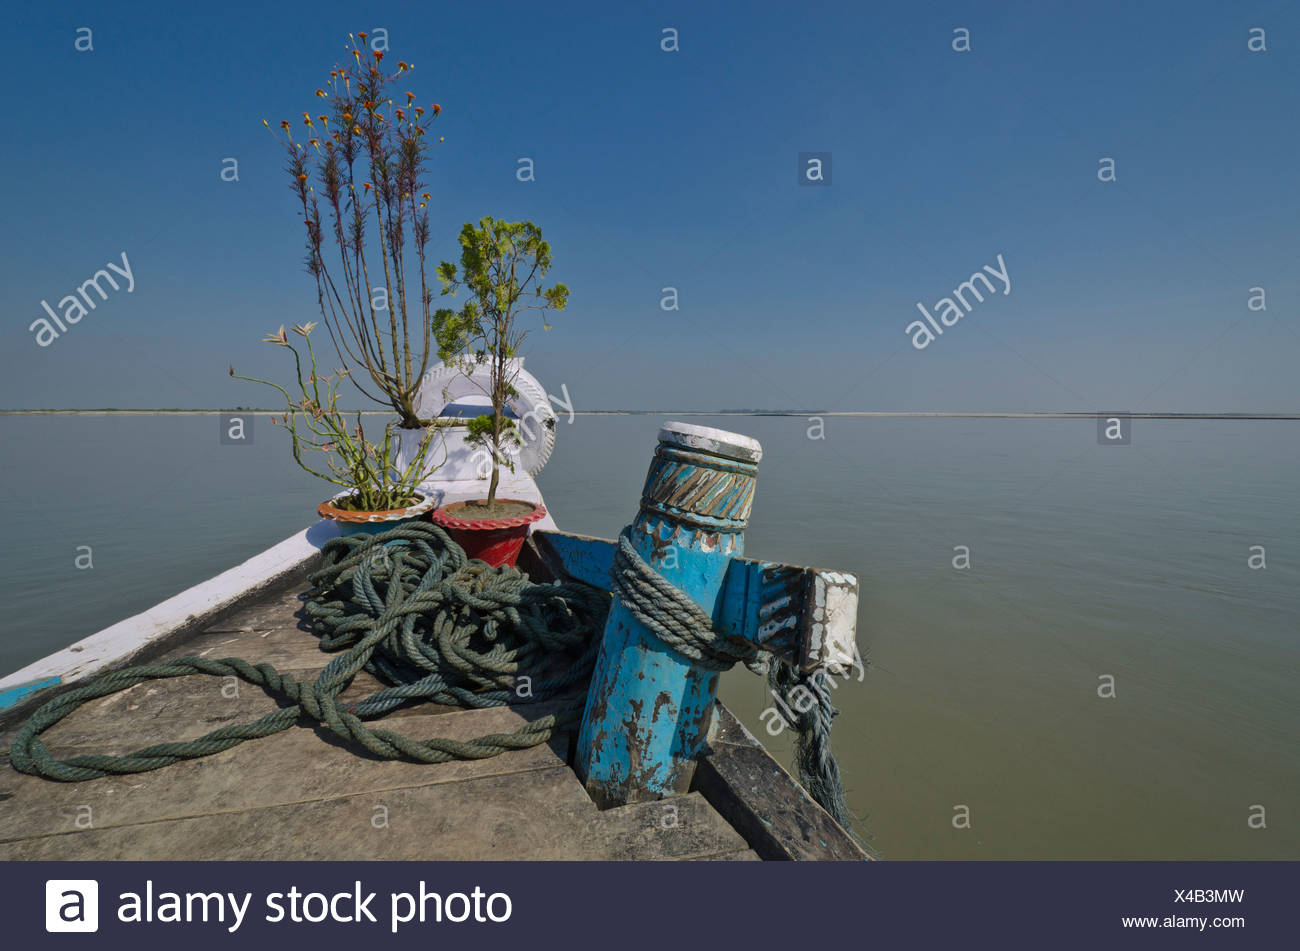 Bow of a rustic ferry-boat at Jorhat which takes more than one hour to cross the mighty Brahmaputra River, India, Asia - Stock Image